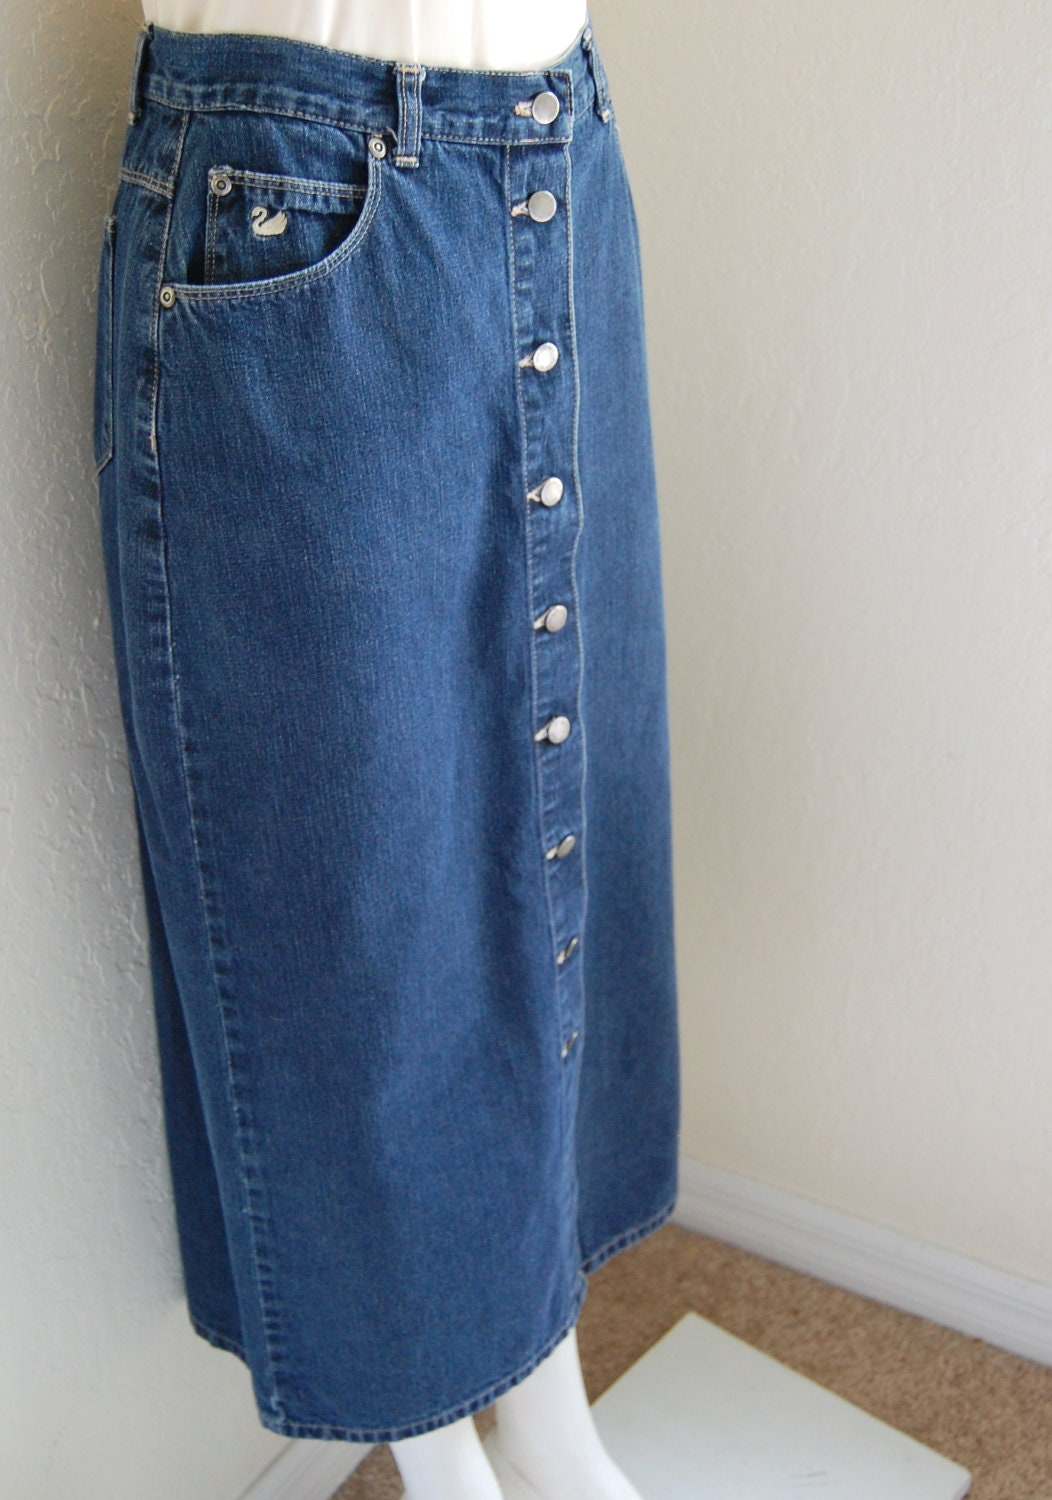 vintage gloria vanderbilt denim skirt by